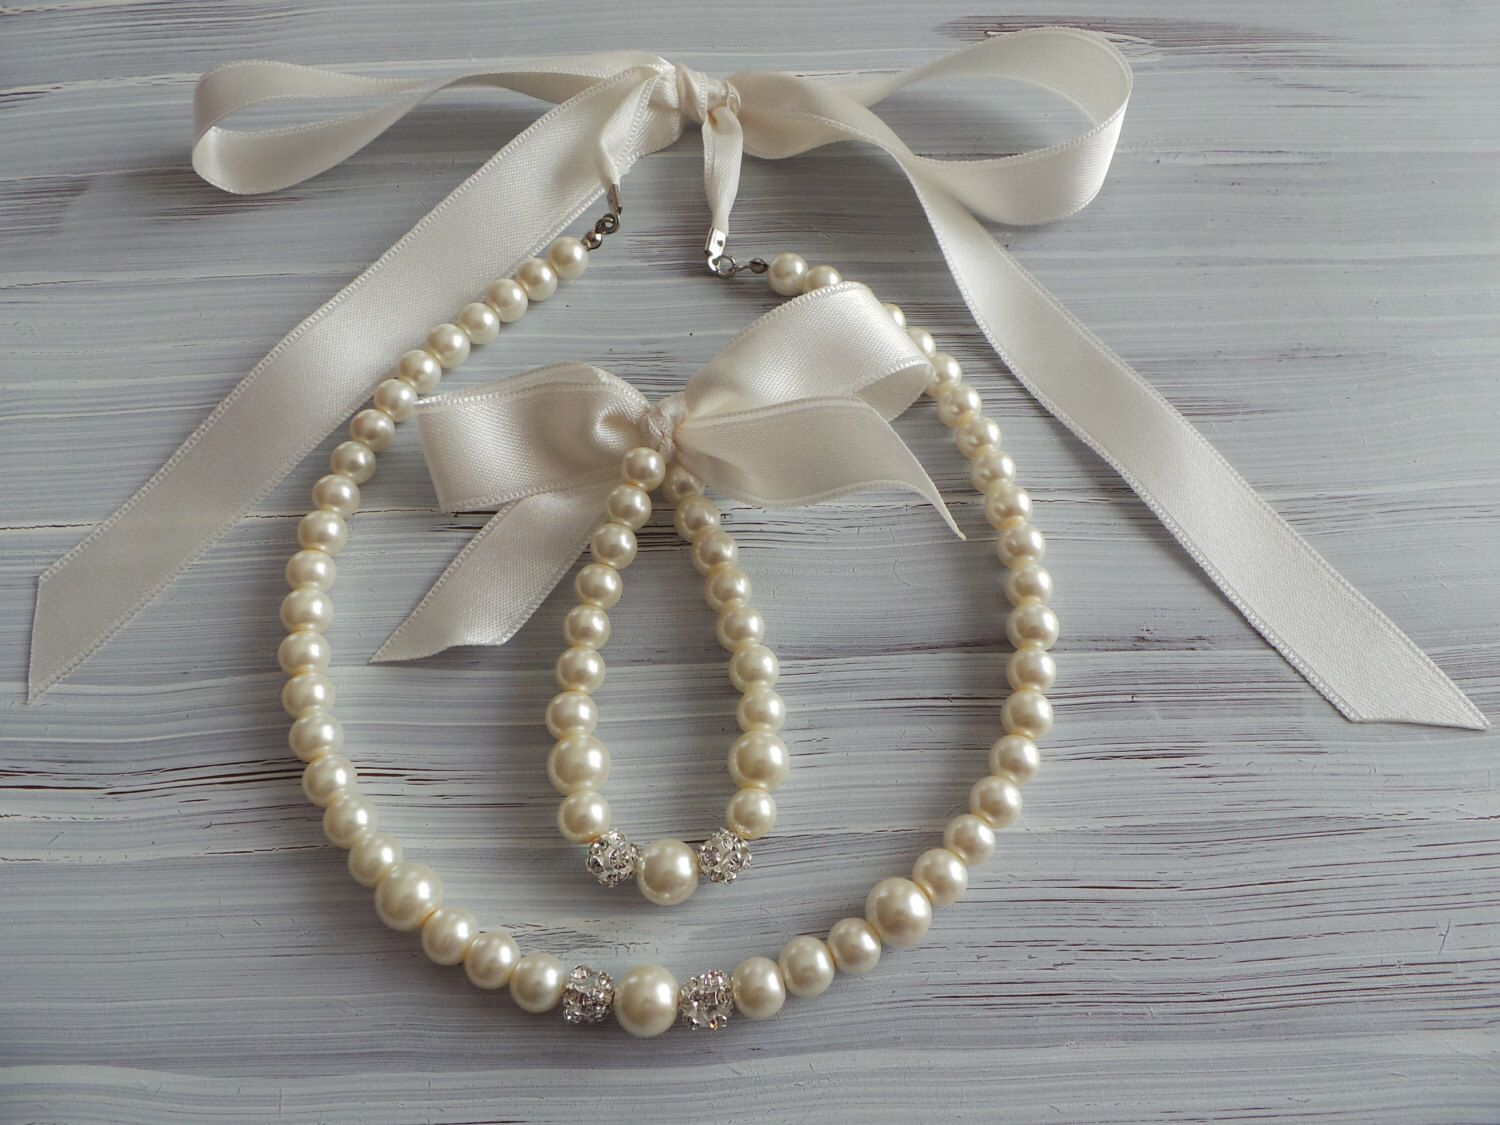 ribbon in perfect inspired bride color nude pin necklace ribbons for pearl satin bradshaw wedding carrie